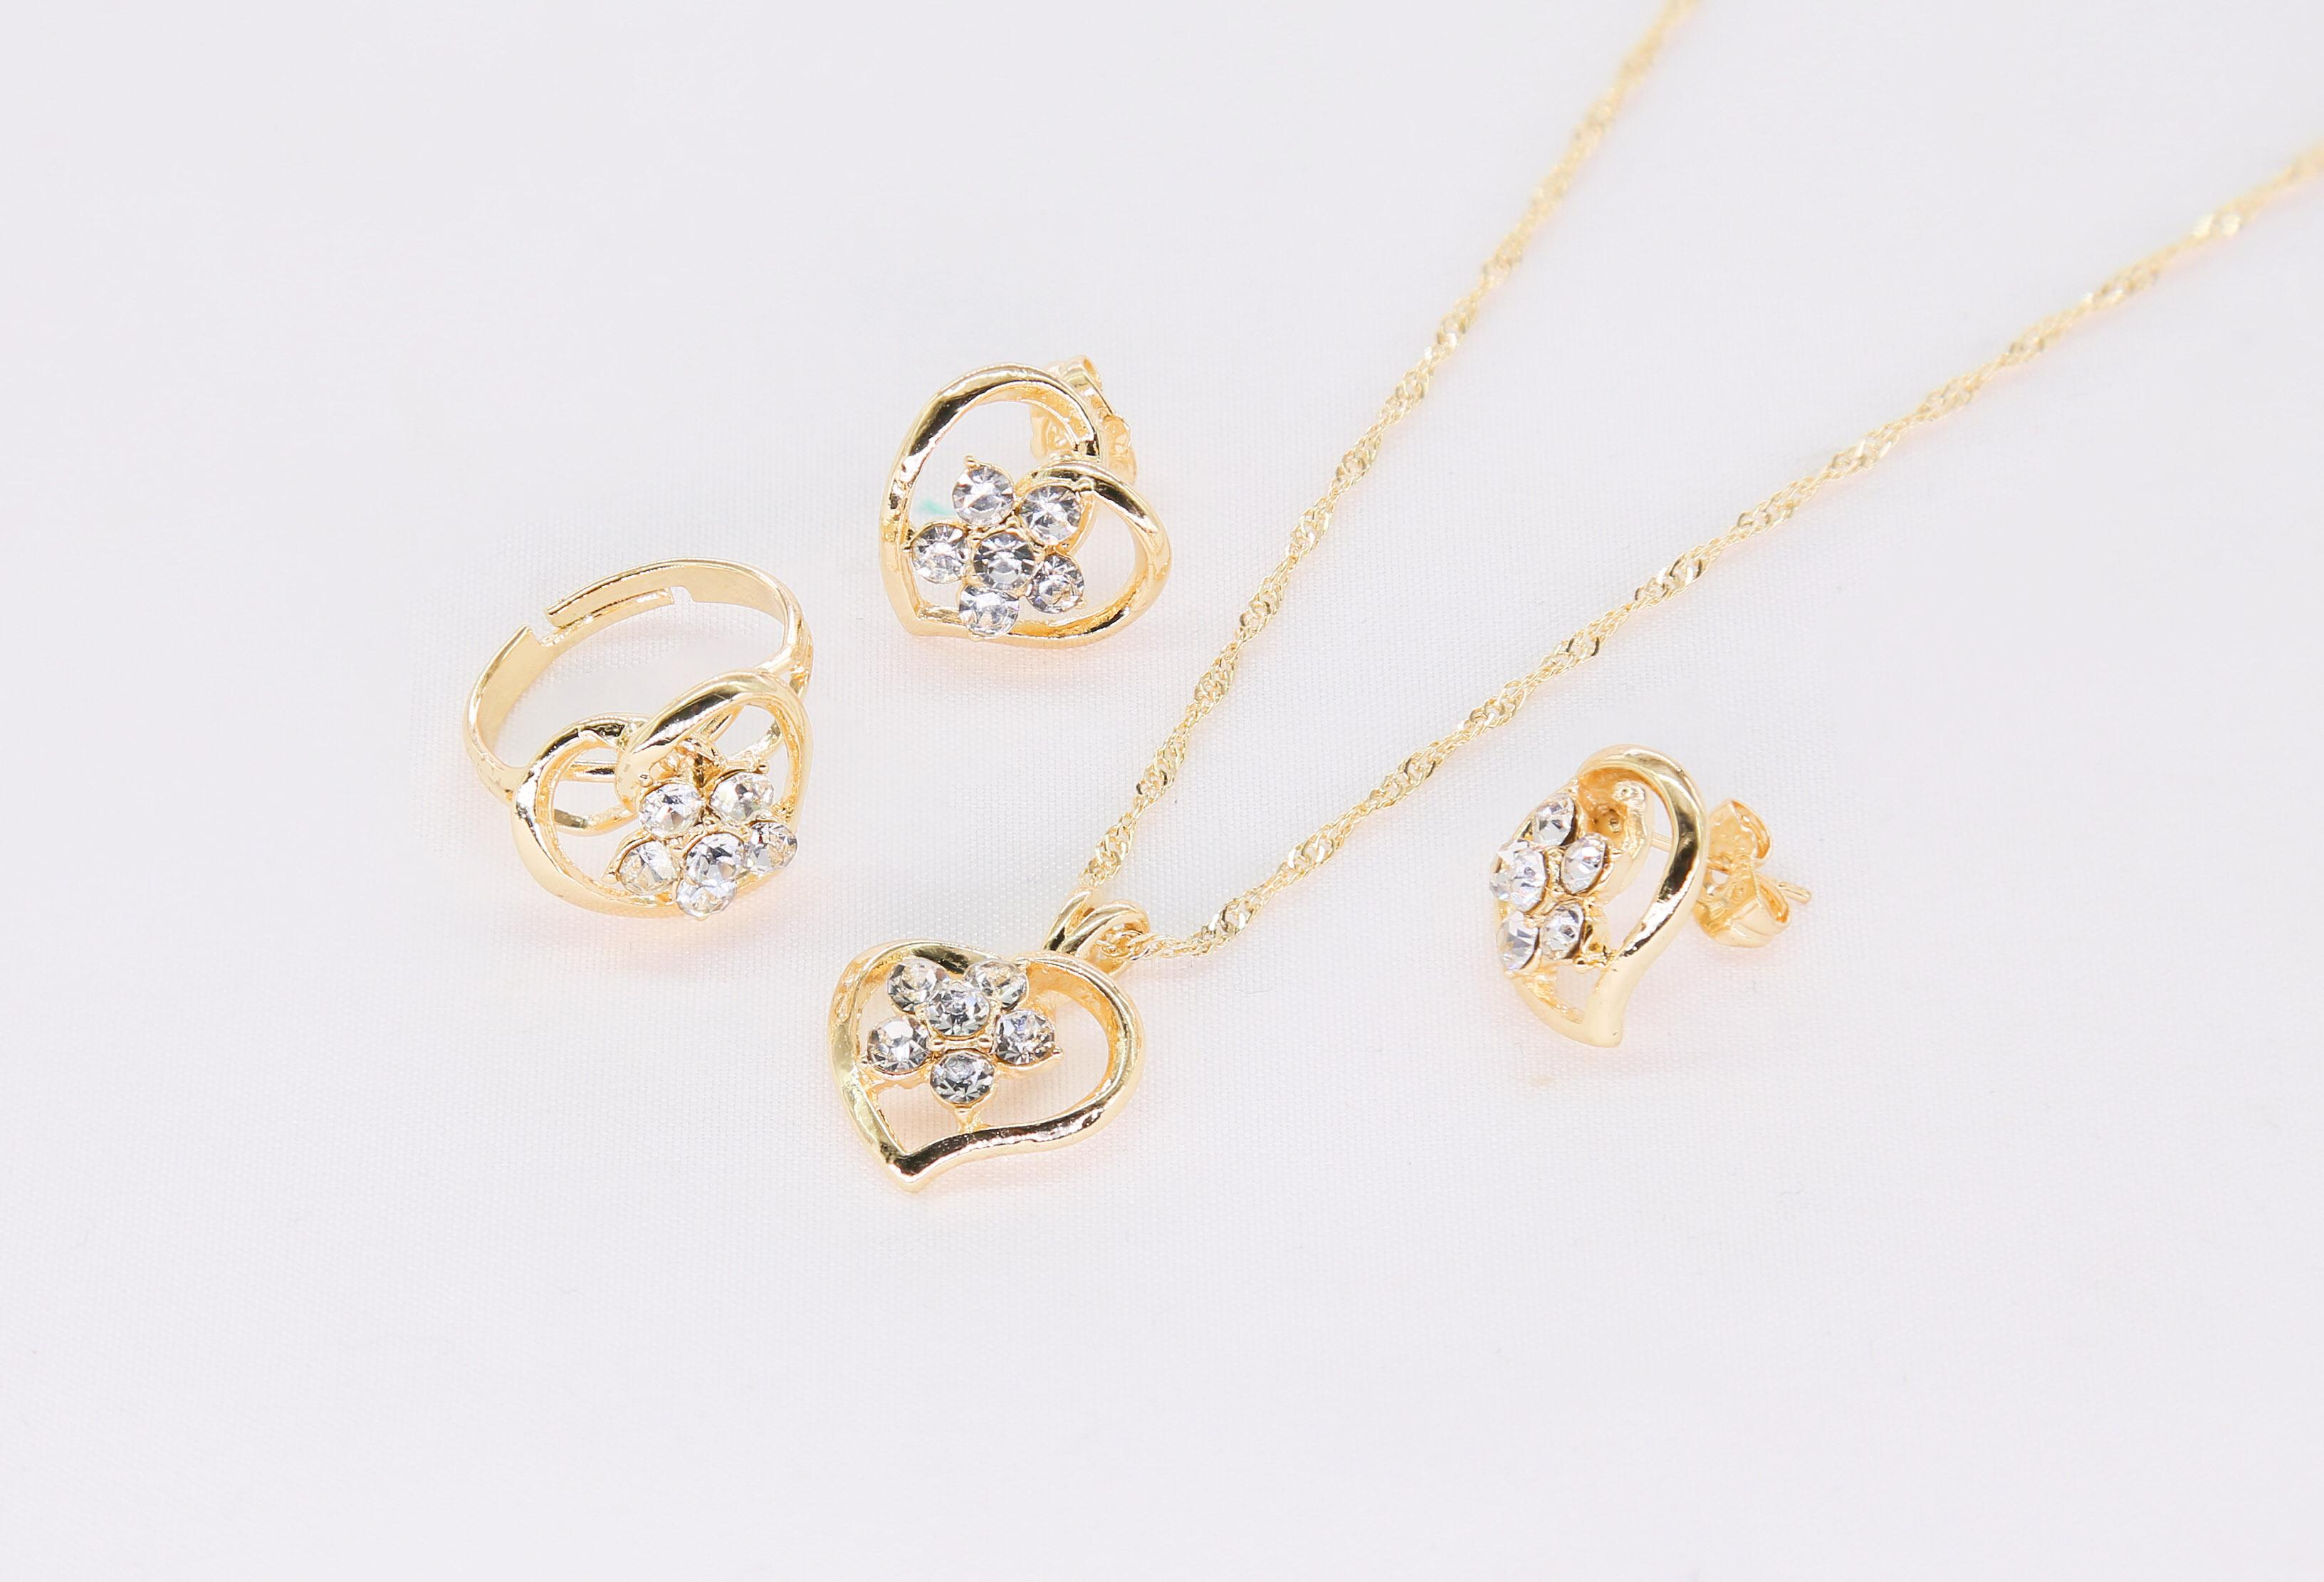 a9bca5f427 Jewelry Sets for sale - Fashion Jewelry Sets online brands, prices ...